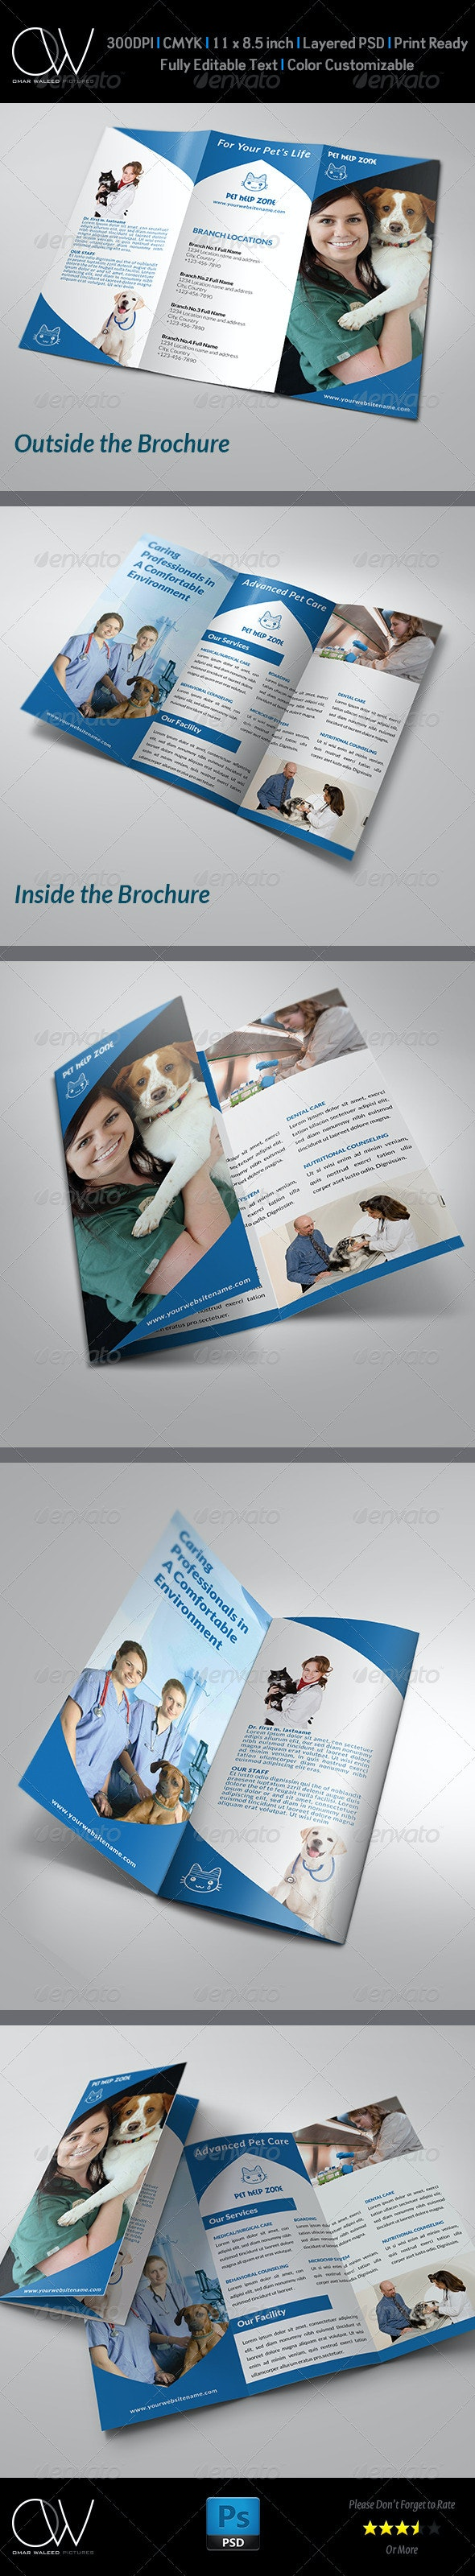 Veterinarian Clinic Brochure Template - Brochures Print Templates